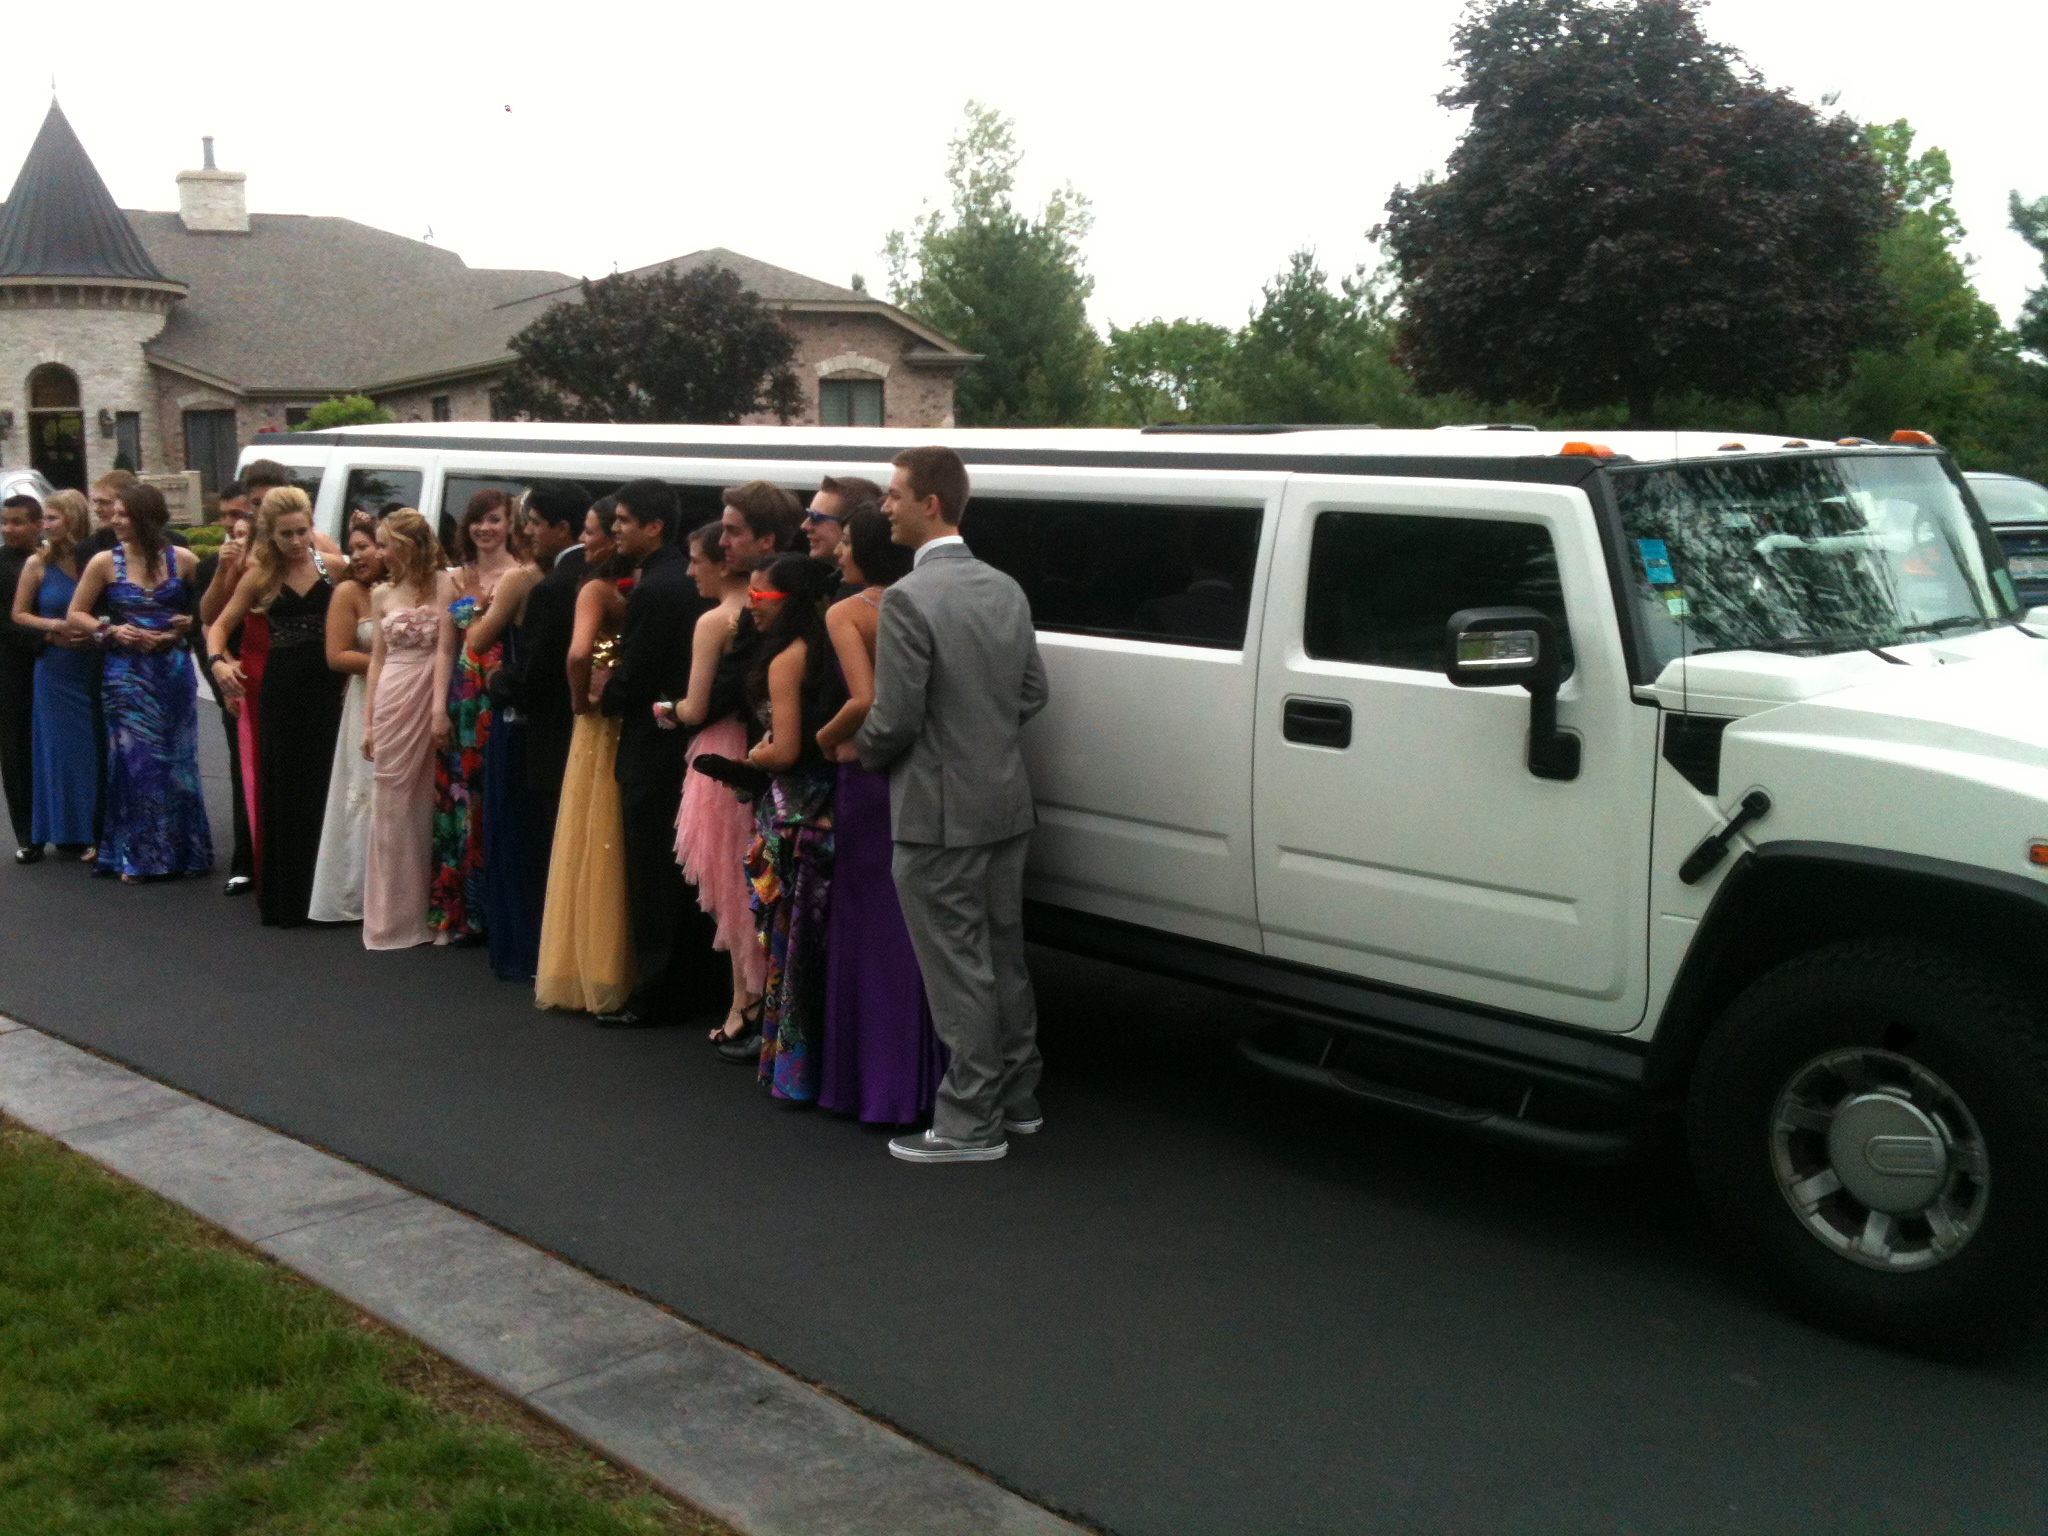 File Hummer Limo used for Prom Wikimedia mons